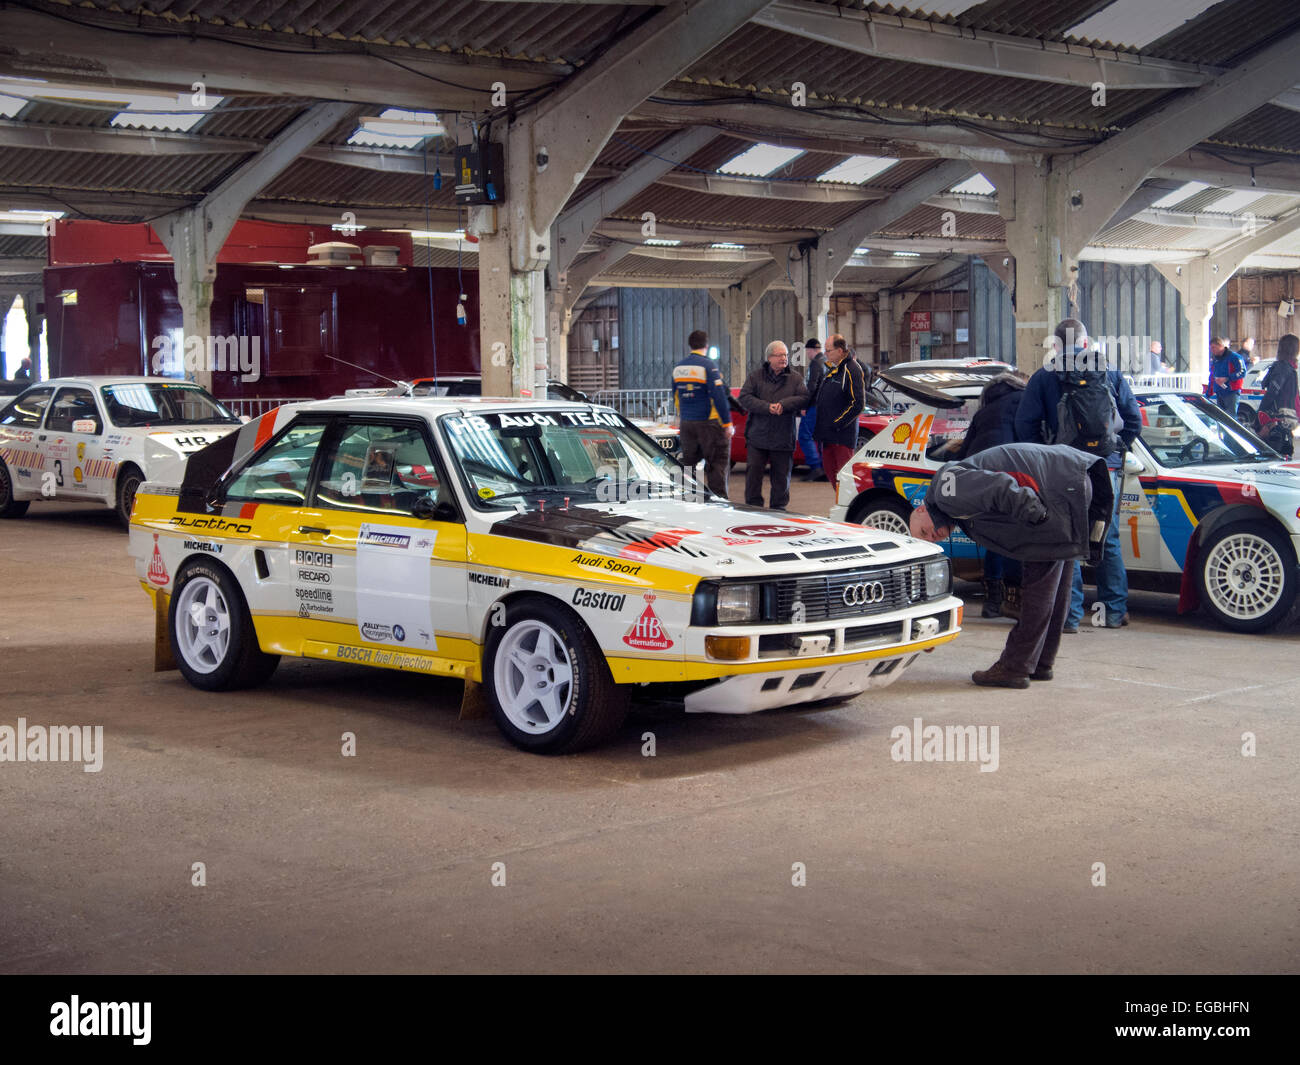 Warwickshire, UK. 21st Feb, 2015. Audi Quattro Sport Group B Rally Car in paddock at Race Retro Event Stoneleigh - Stock Image